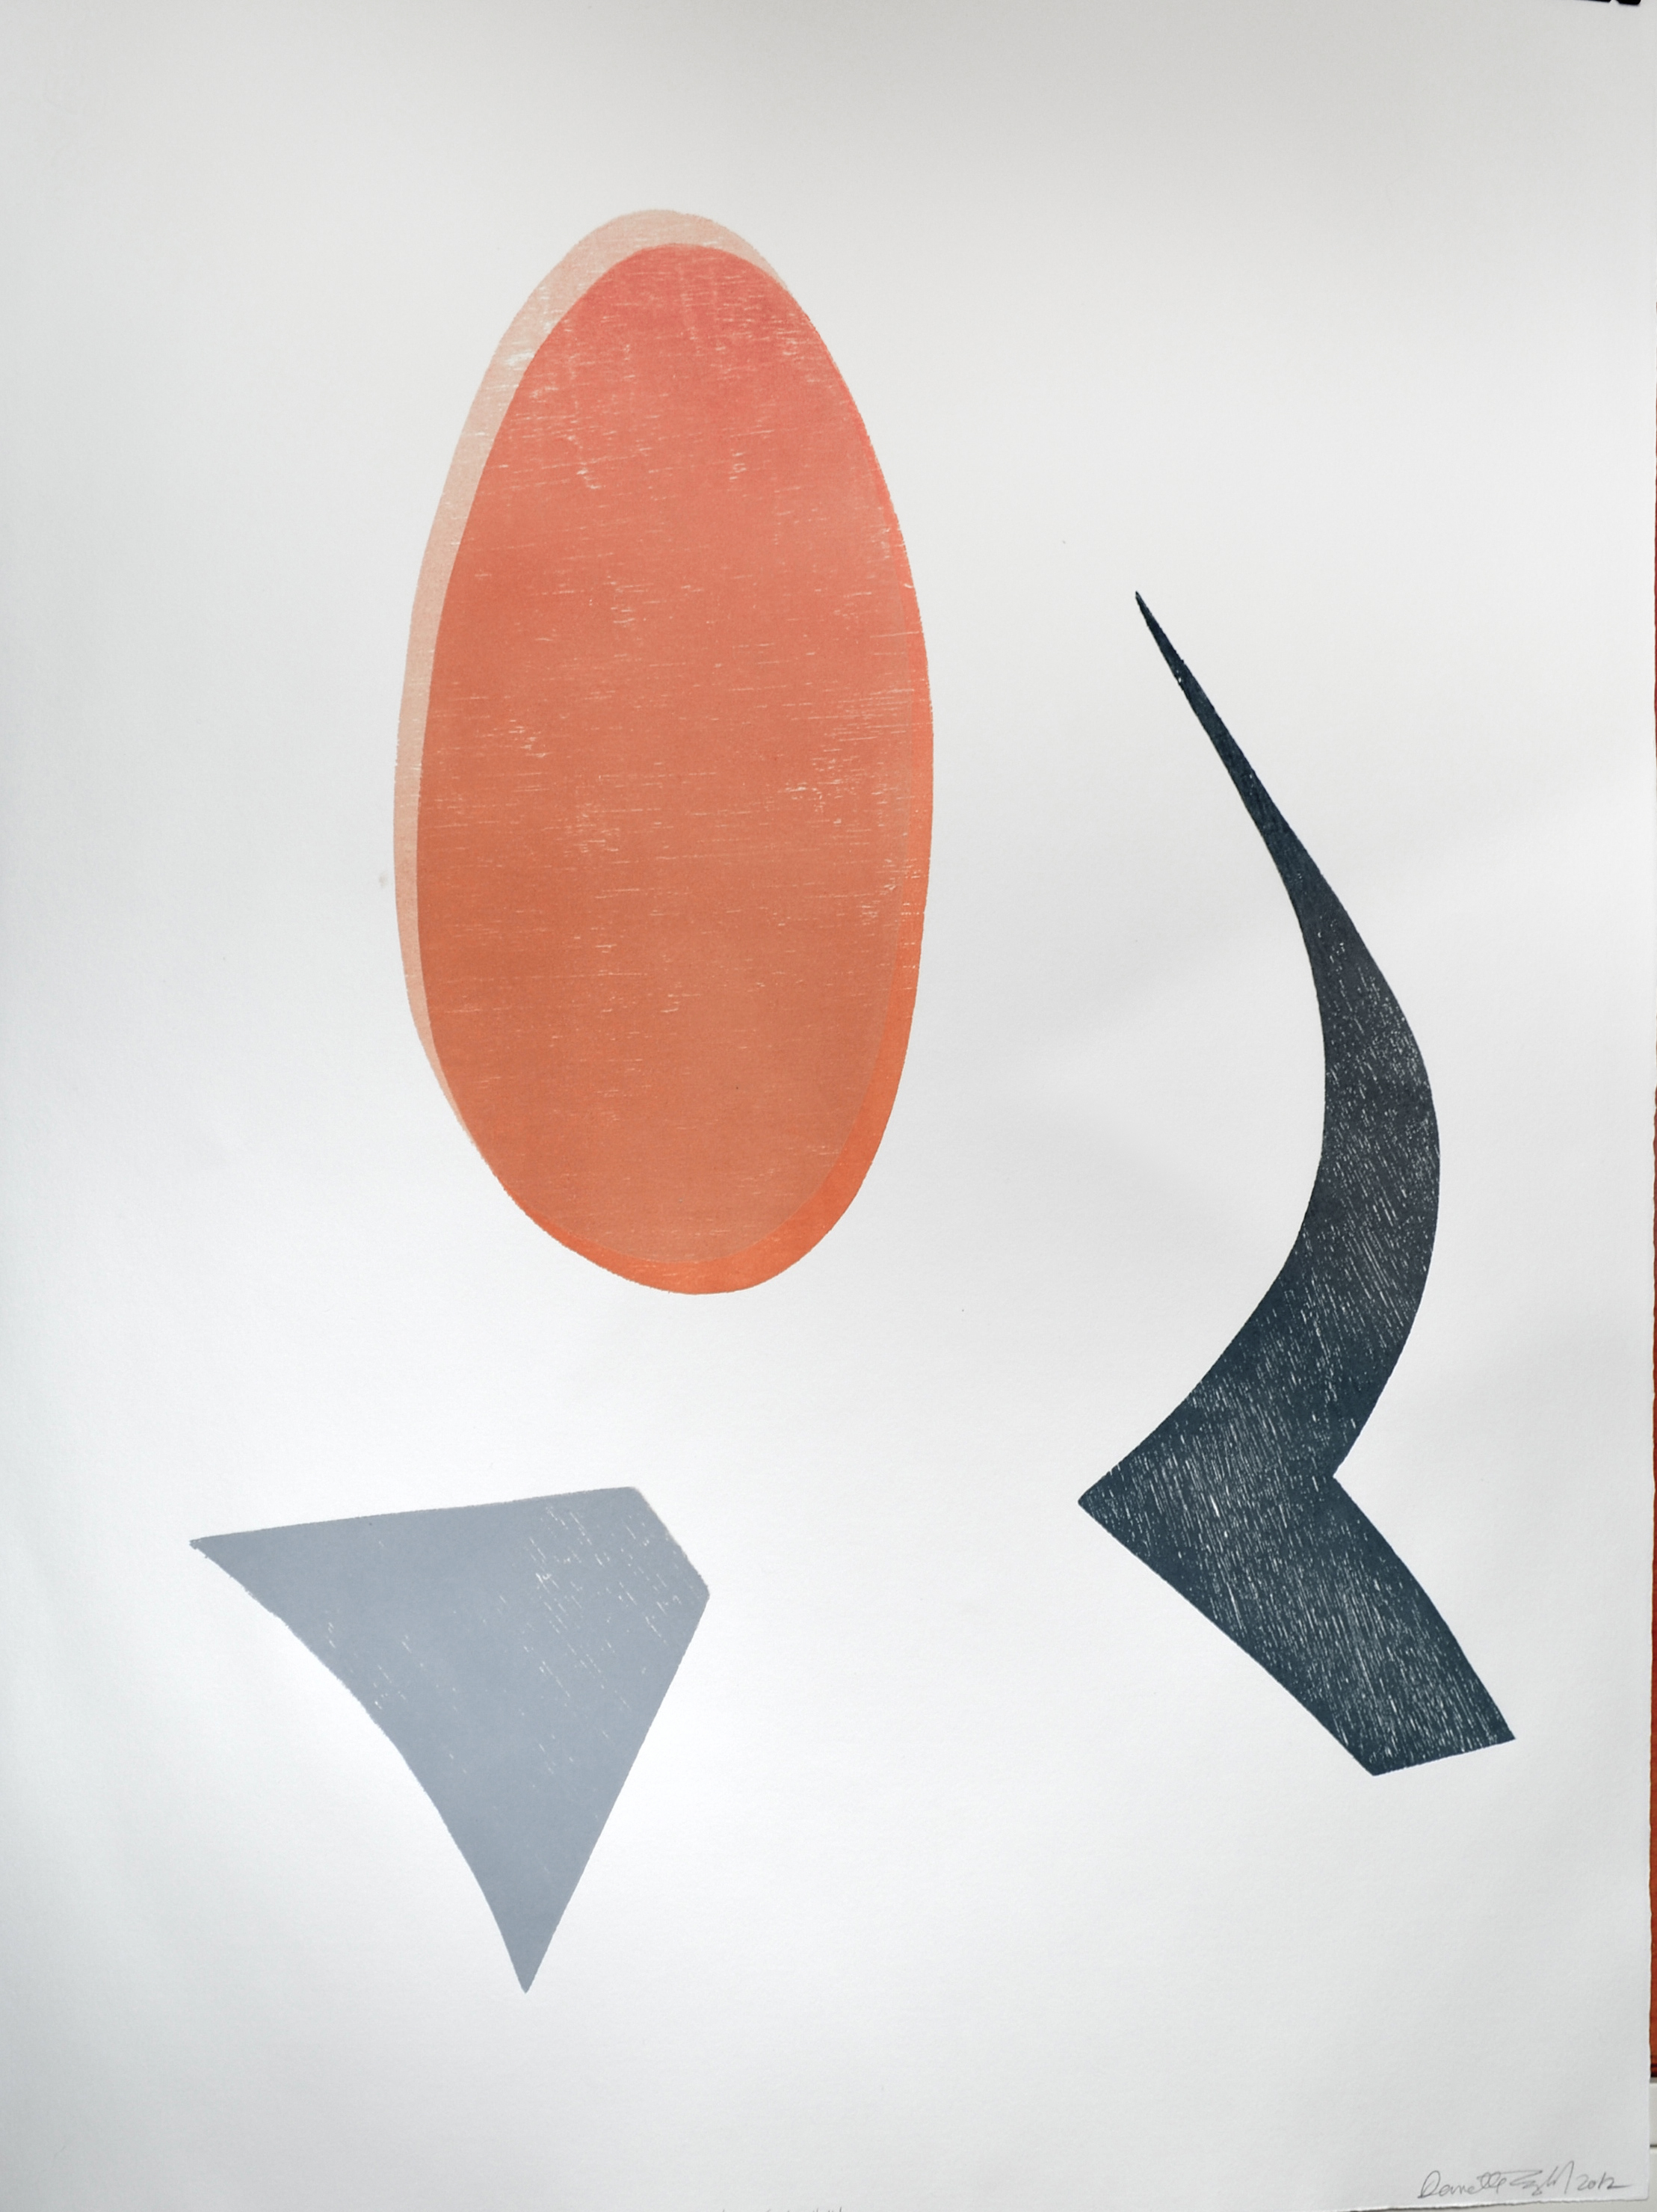 DANETTE ENGLISH  Vase Series #14  2012 relief monoprint on paper, 30 x 22 inches